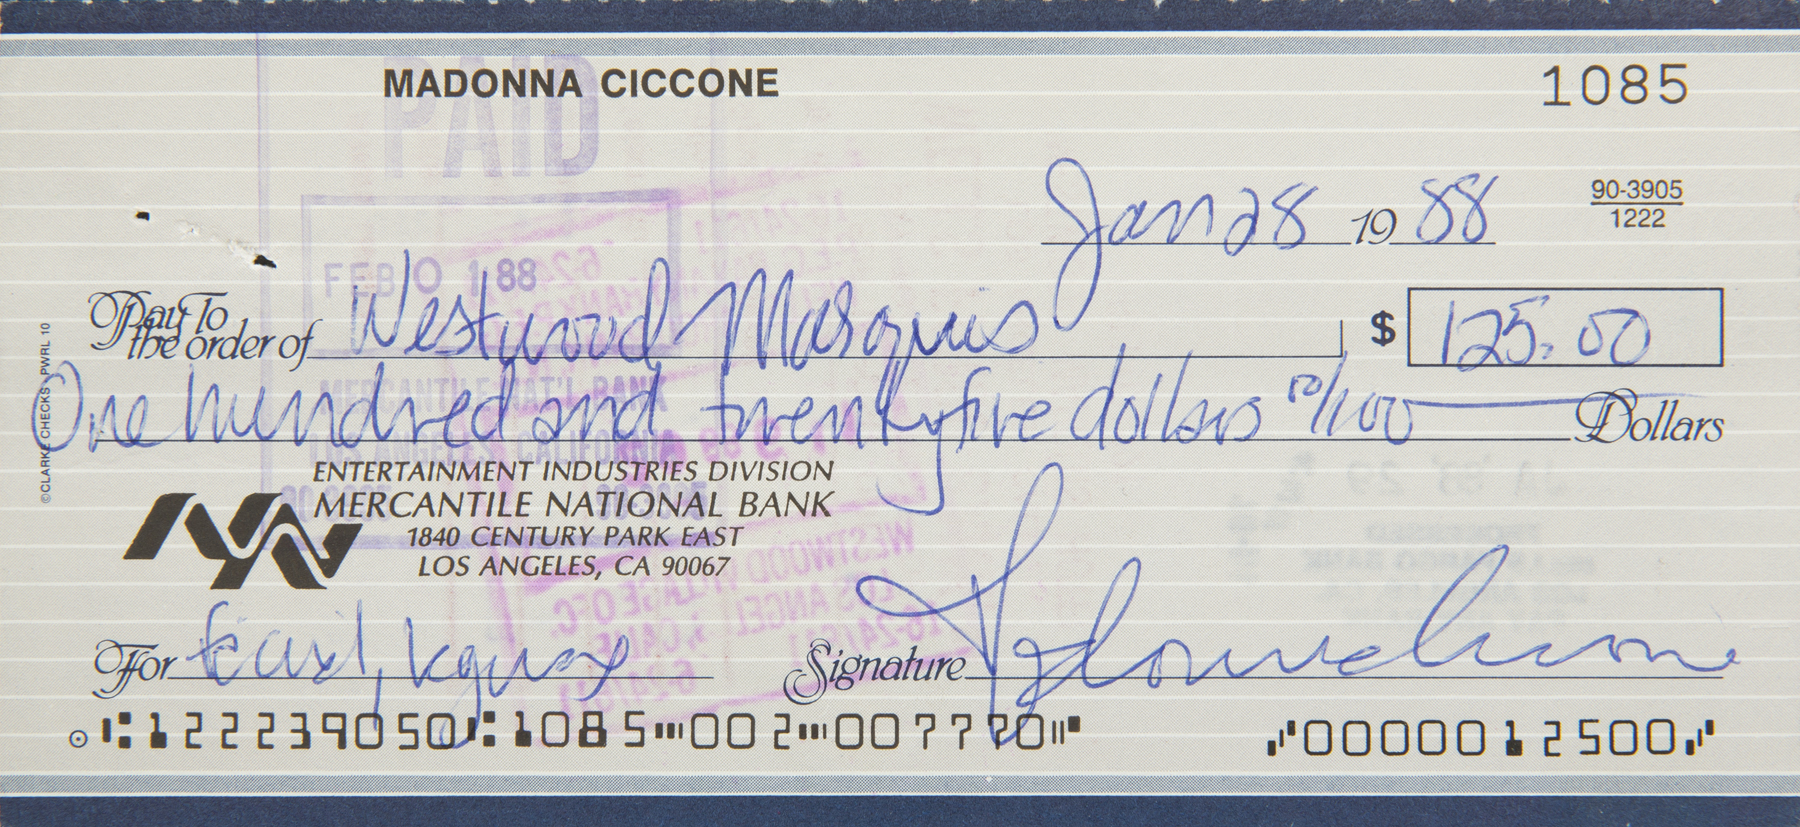 MADONNA SIGNED CHECK